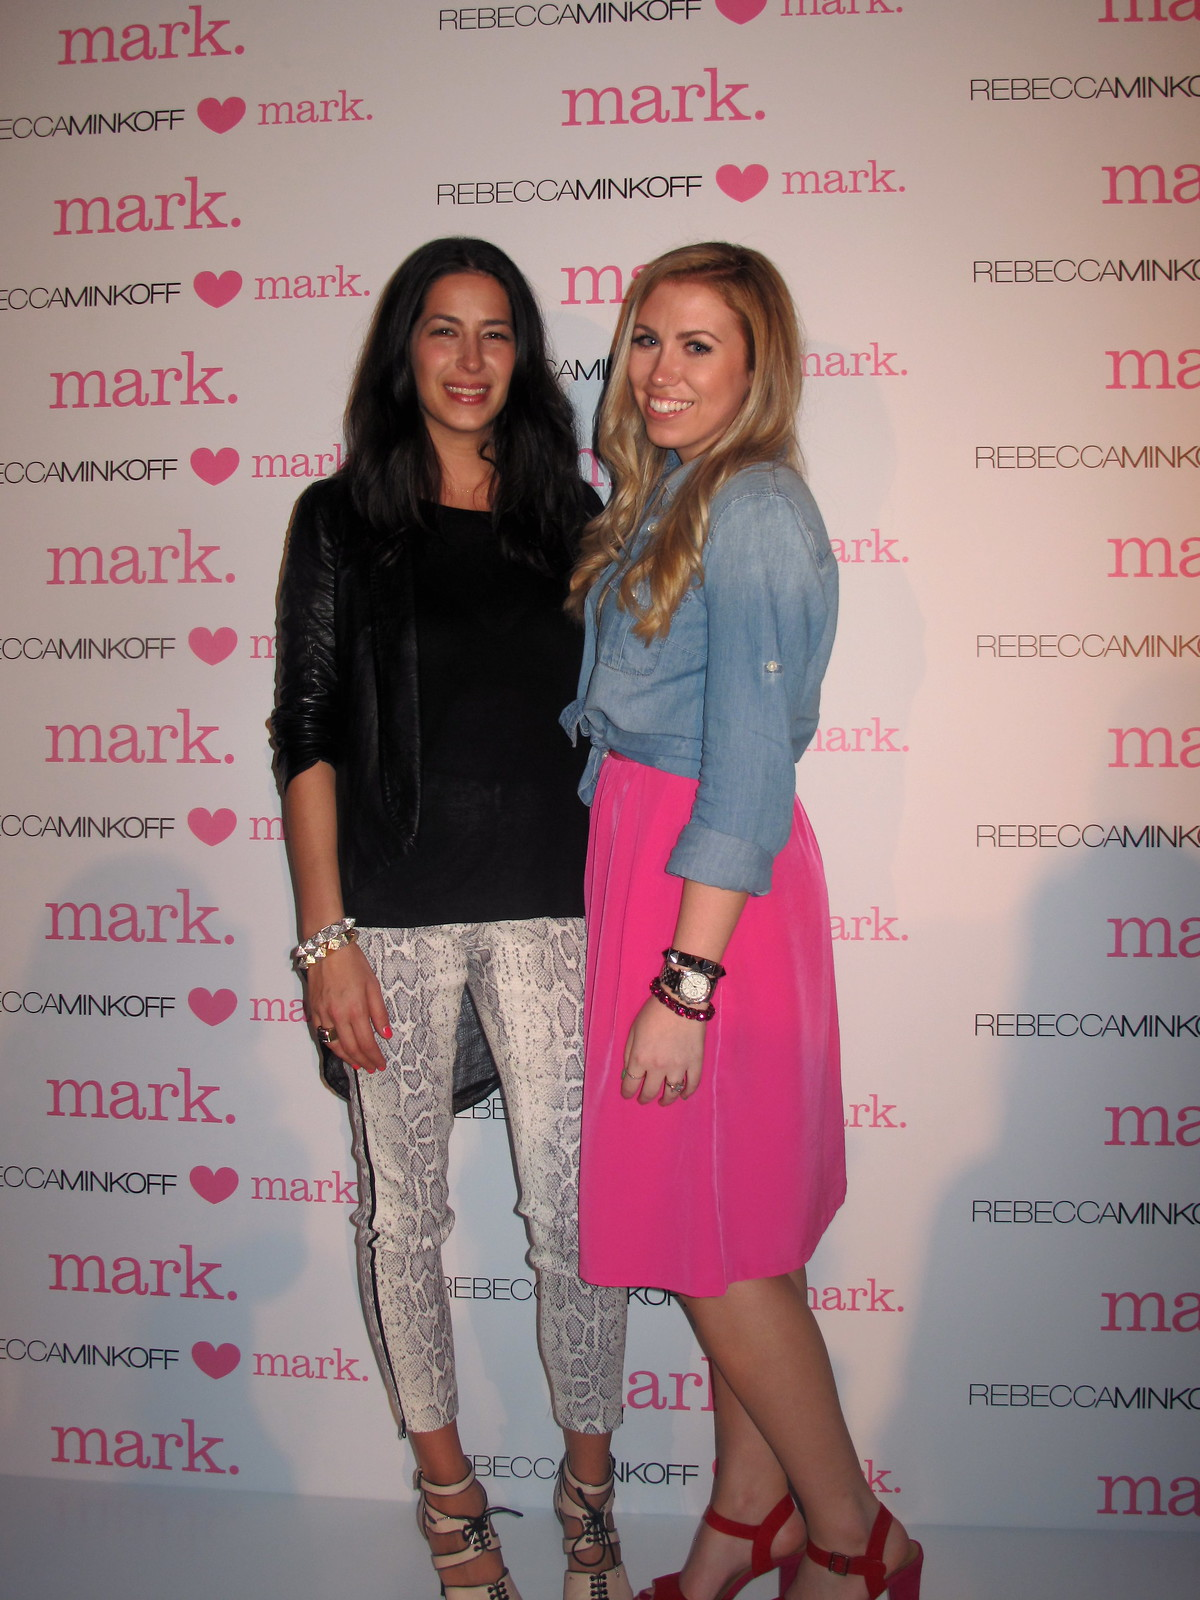 Rebecca Minkoff HEARTS mark. Delight Bag Release Party 2012 | Denim Shirt | Pink Midi Skirt | A Look Back at 10 Years of Blogging Living After Midnite Blogger Jackie Giardina